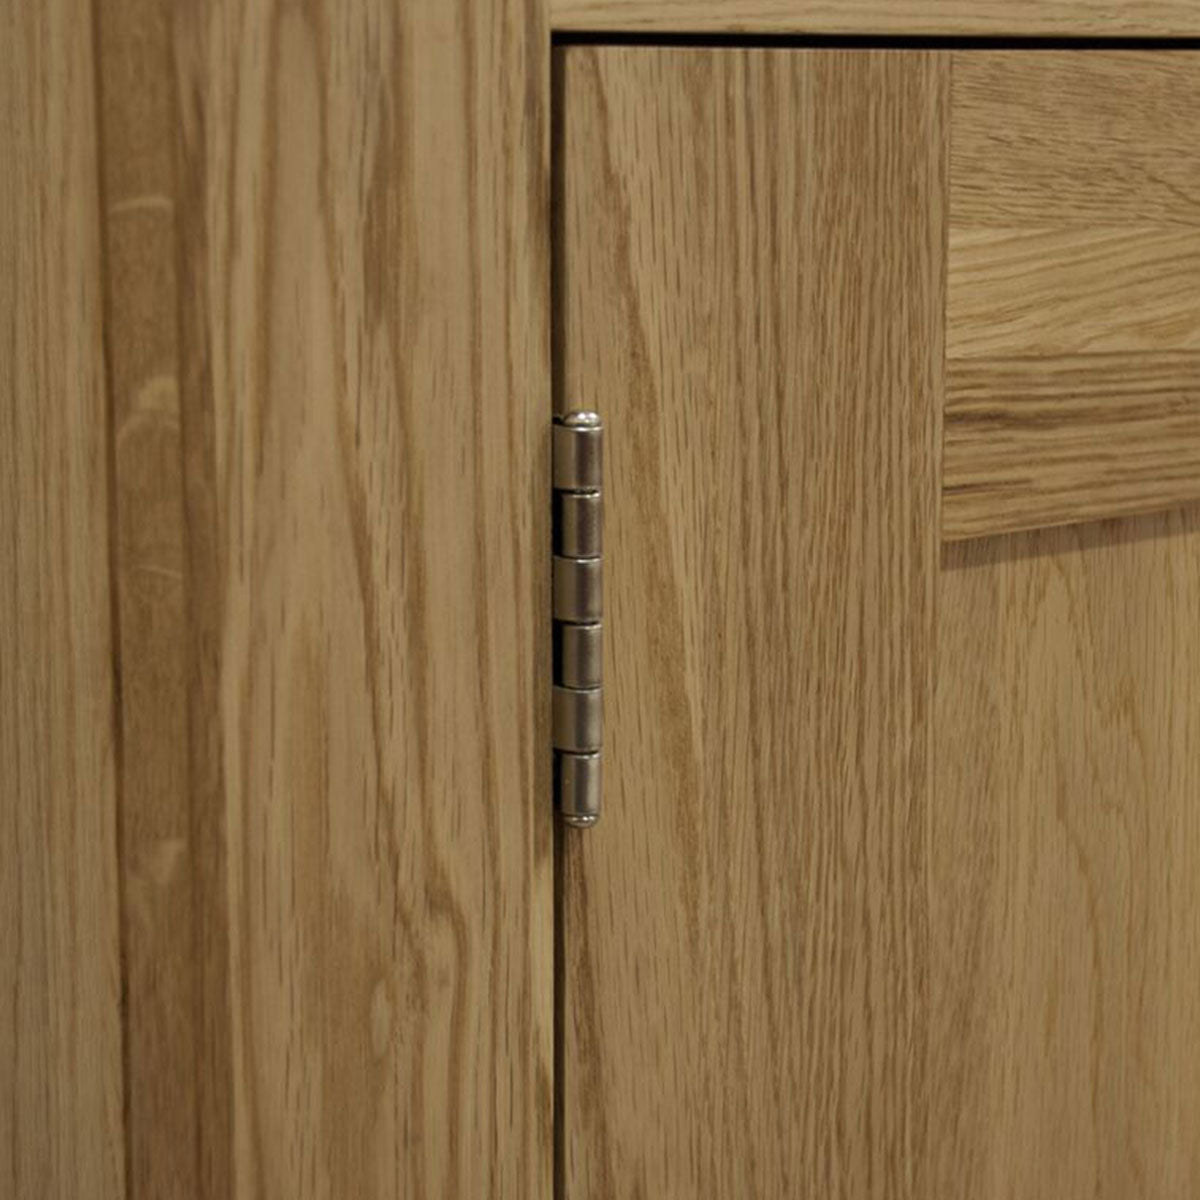 View Here The Pure Quality Of The Valencia Deluxe Oak Range